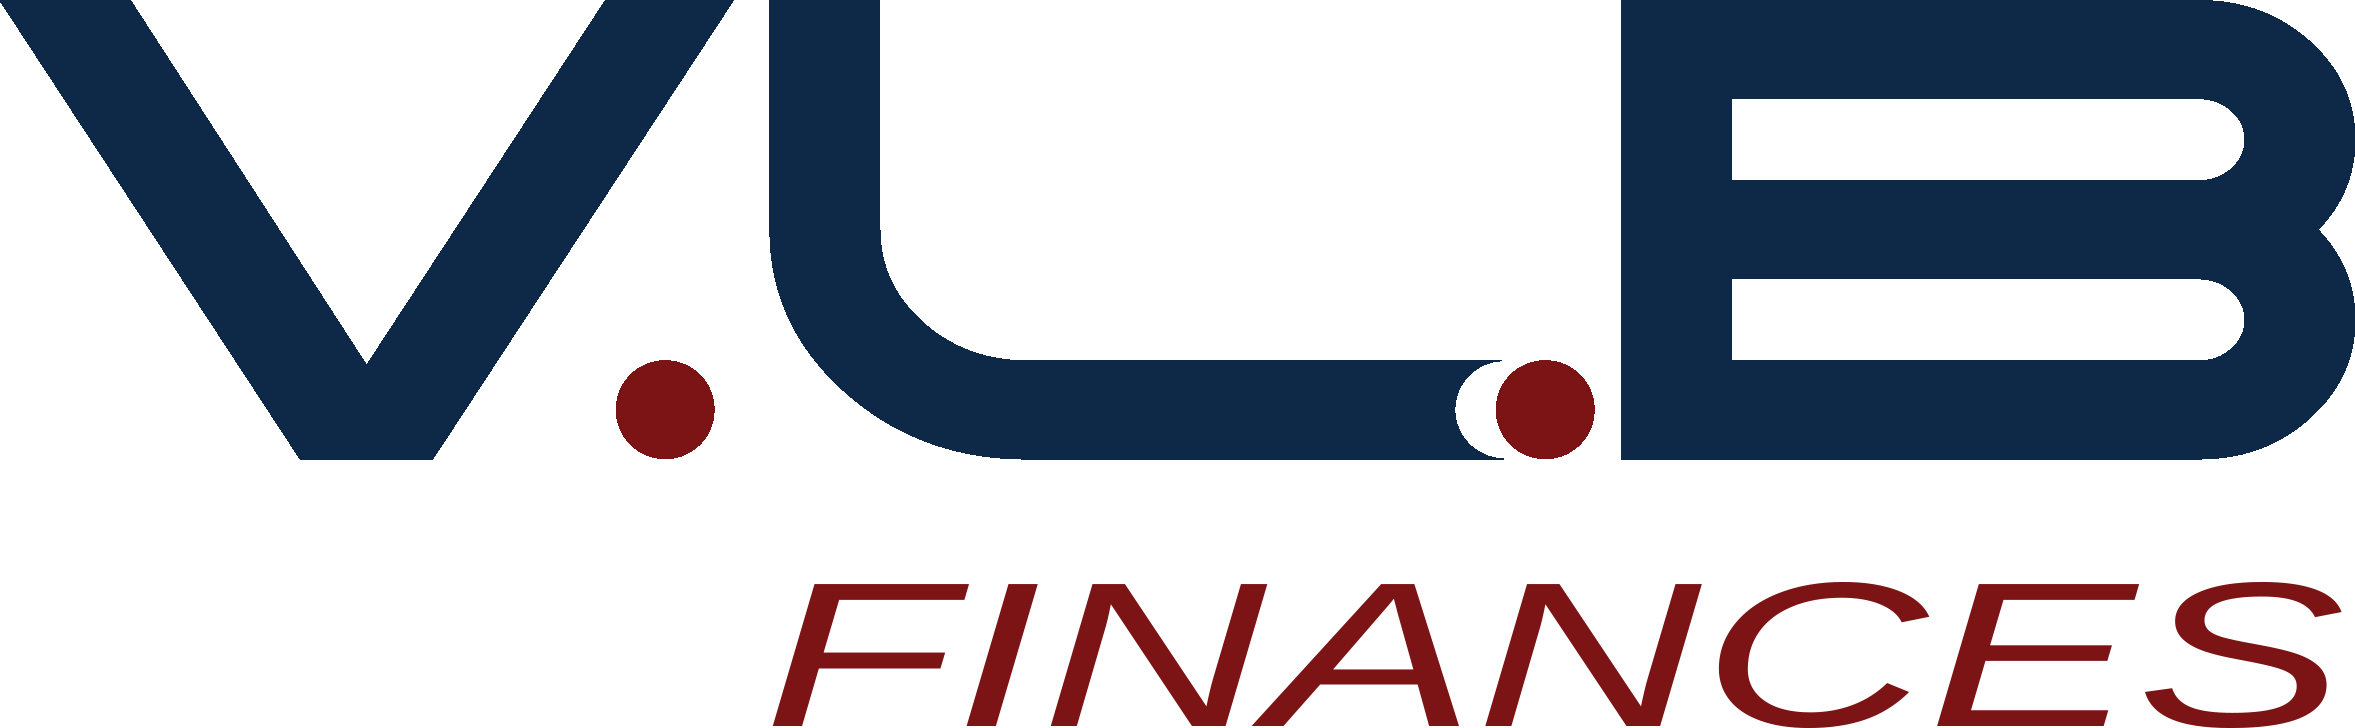 logo-vlb-finances-color-1